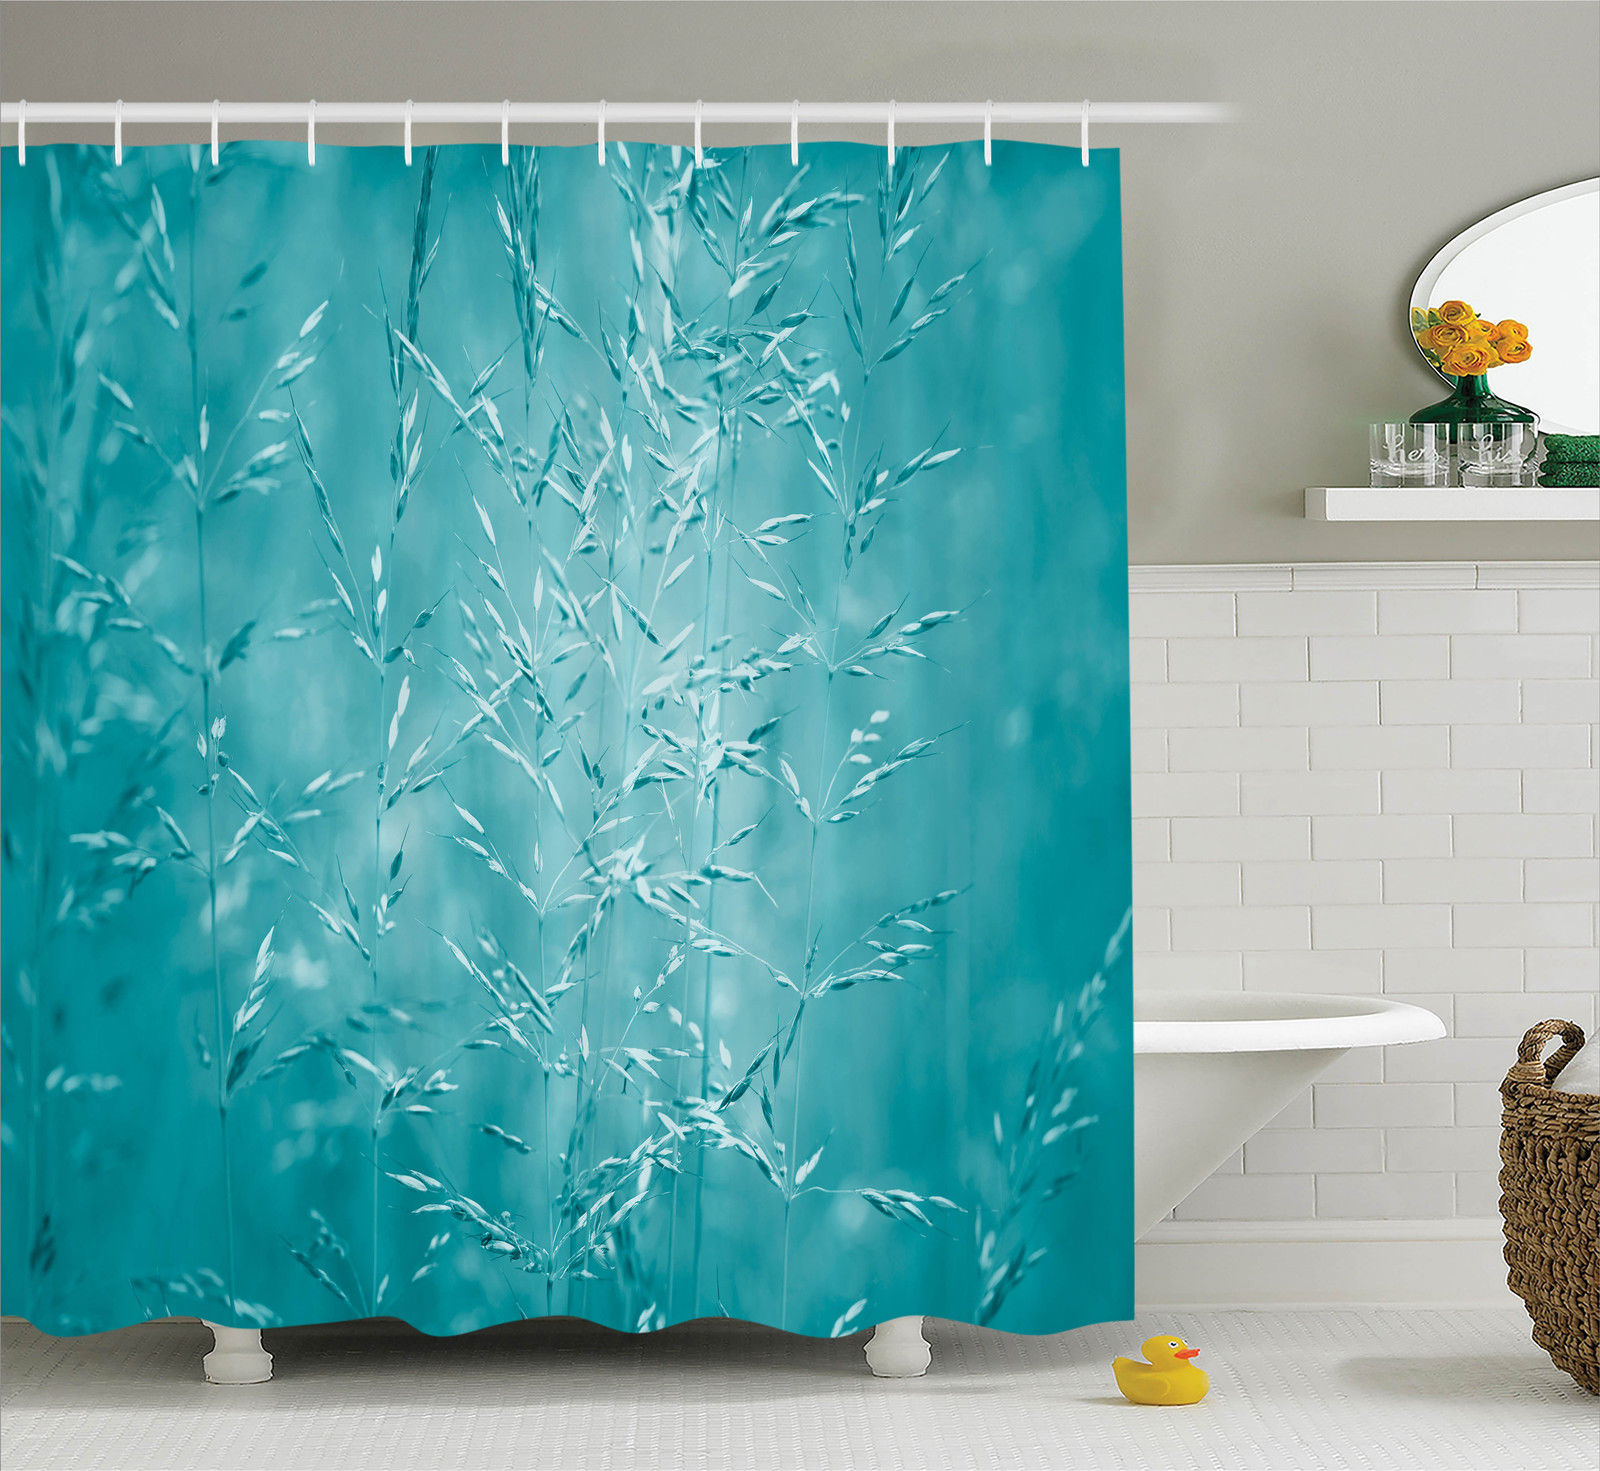 Meadow Grass With Blue Filtre Rural Plants Nature Picture Shower Curtain Set Ebay